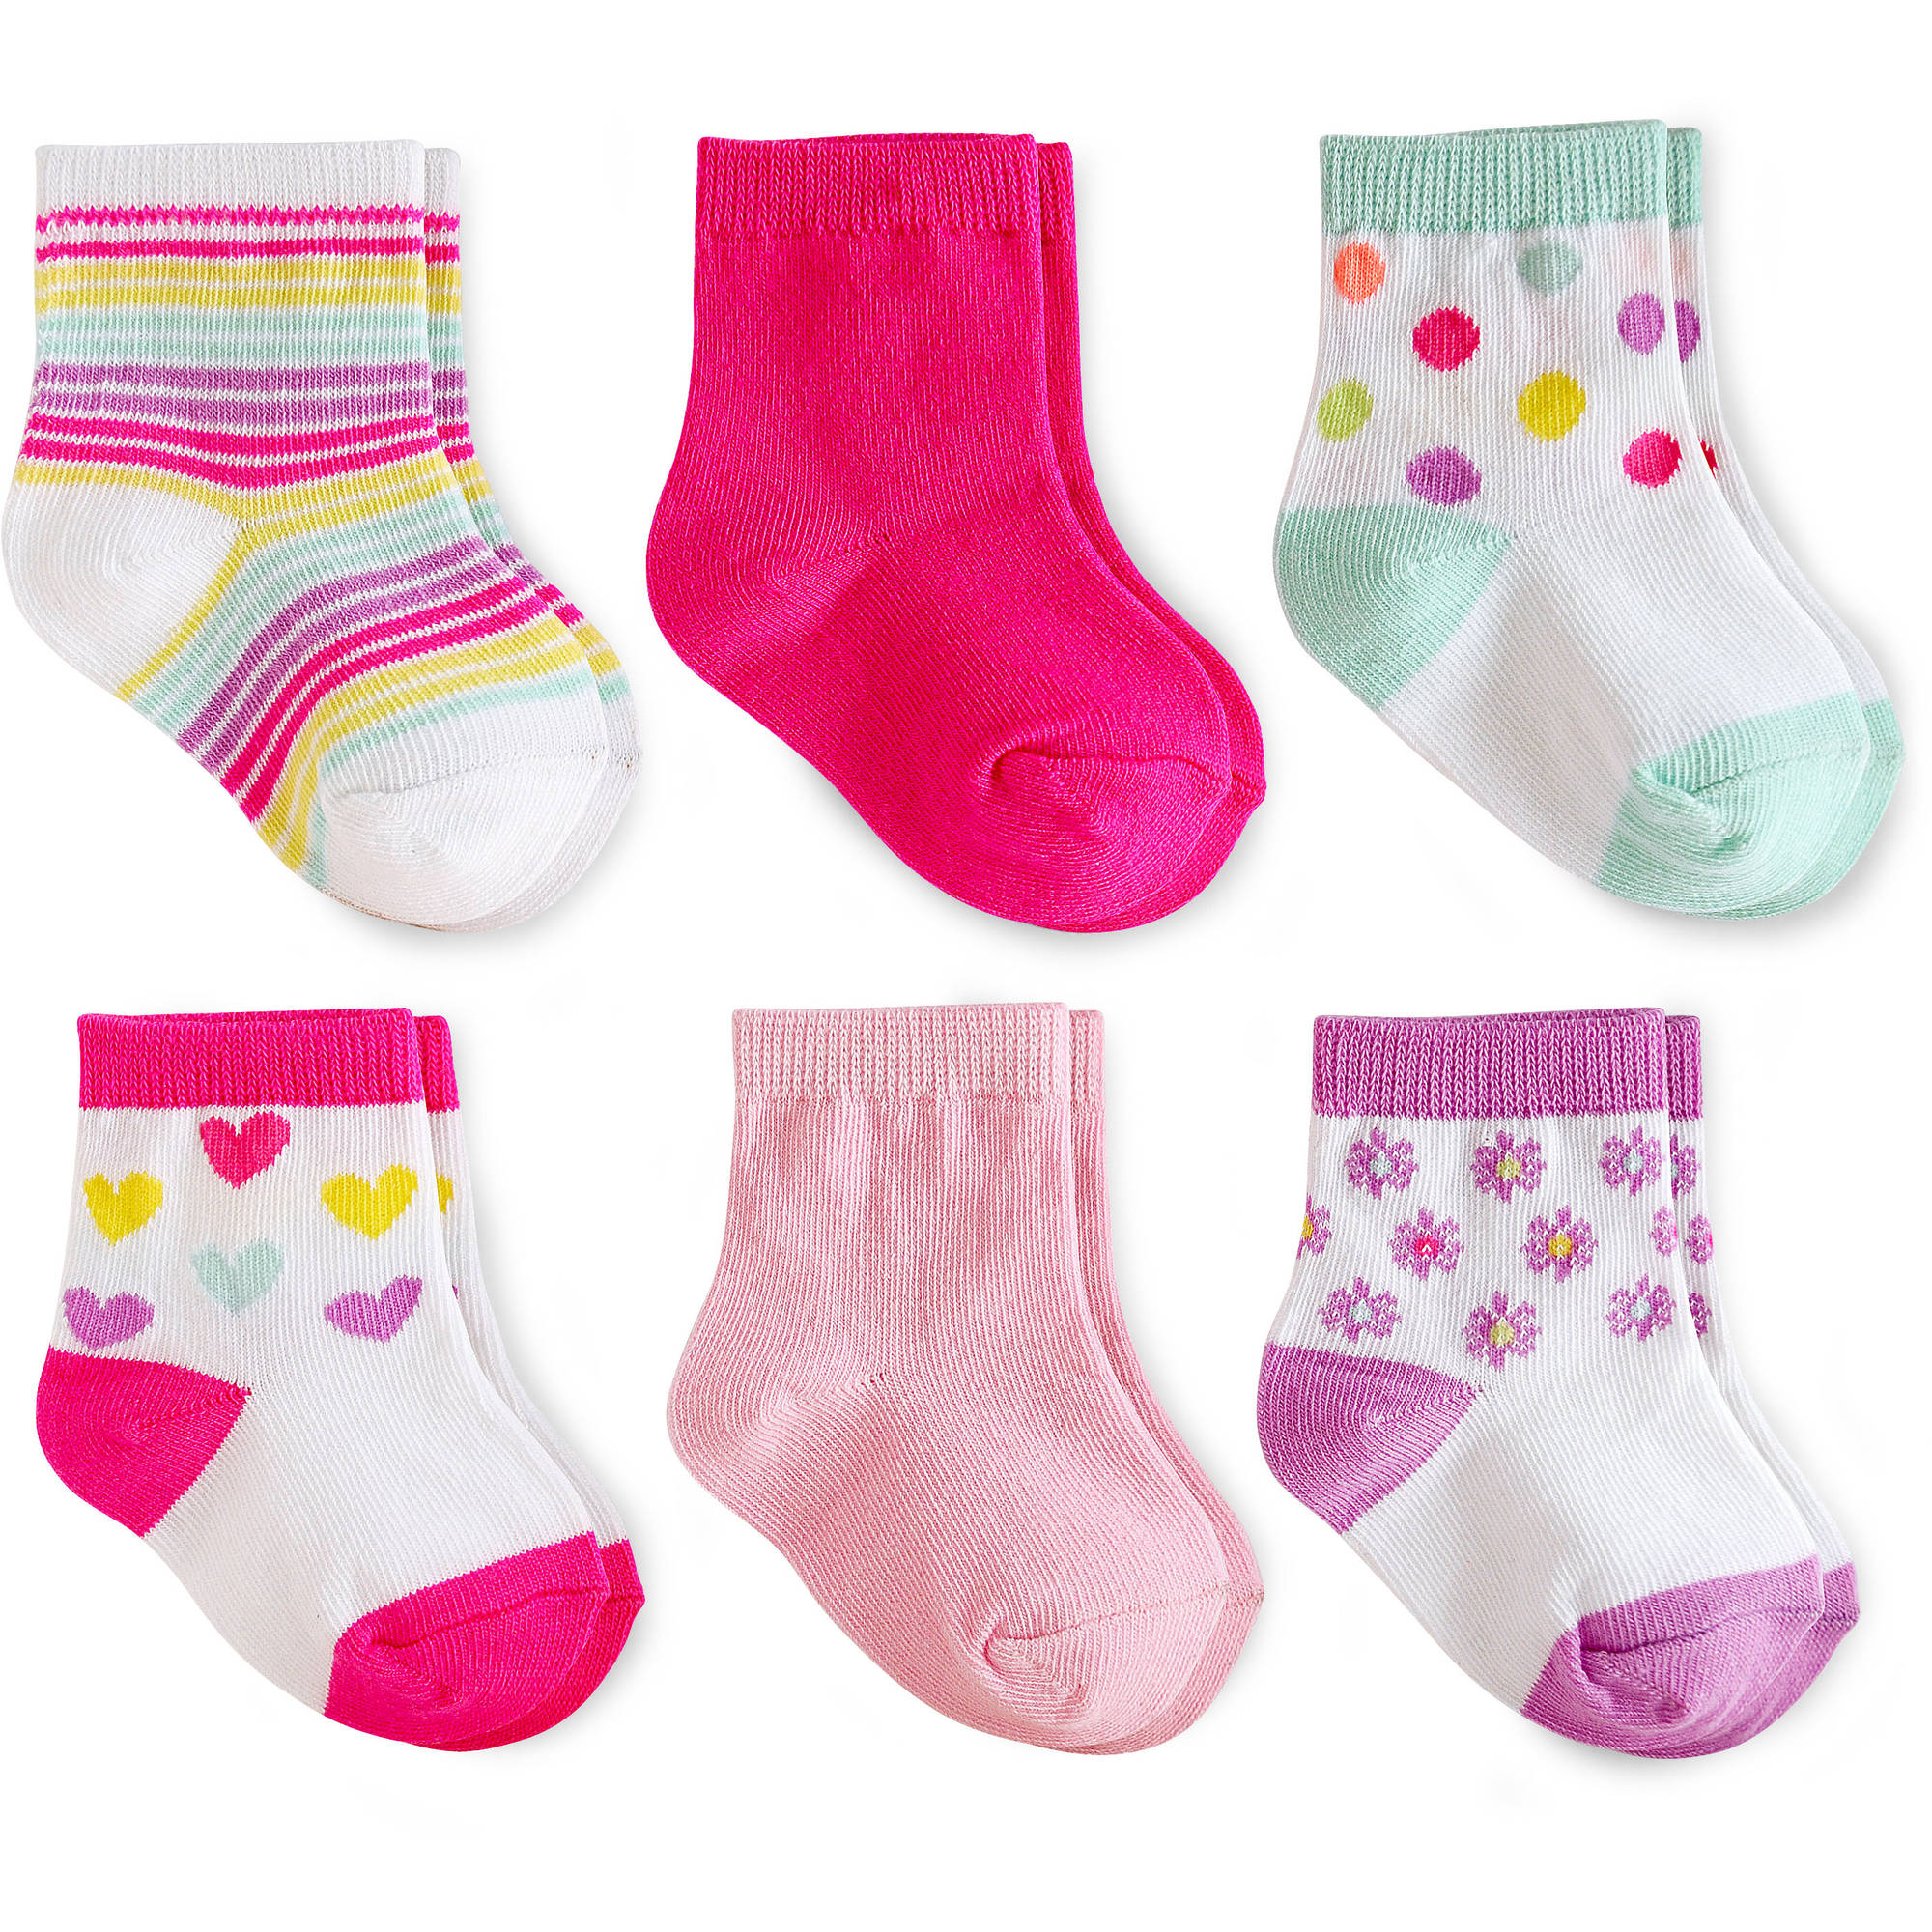 Garanimals Baby Toddler Girl Striped Crew Socks Ages NB-5T, 6-Pack